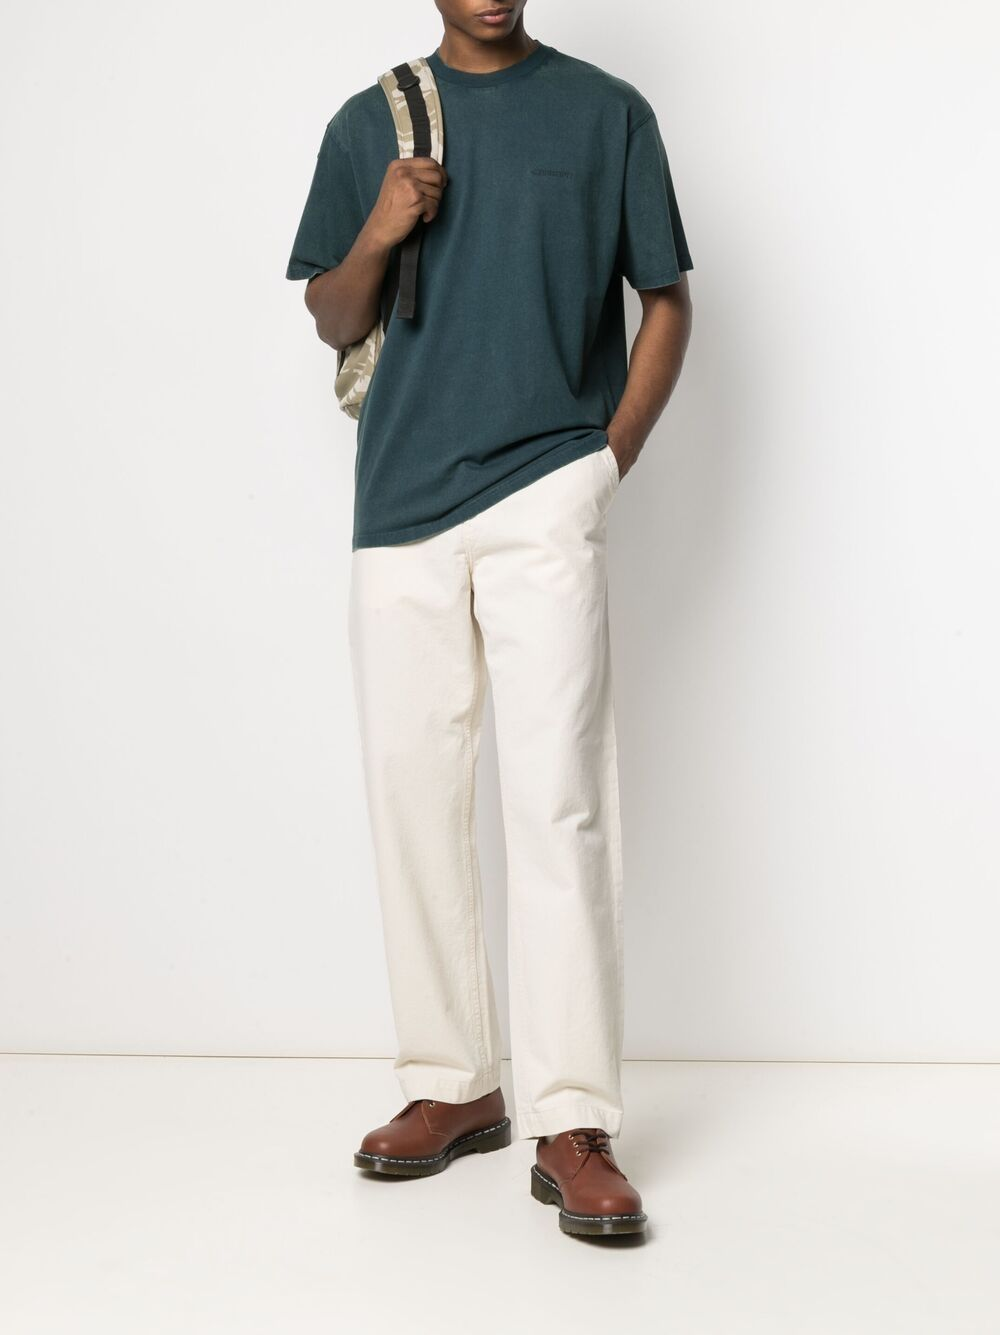 WESLEY PANT CARHARTT | Trousers | I02911805.GD